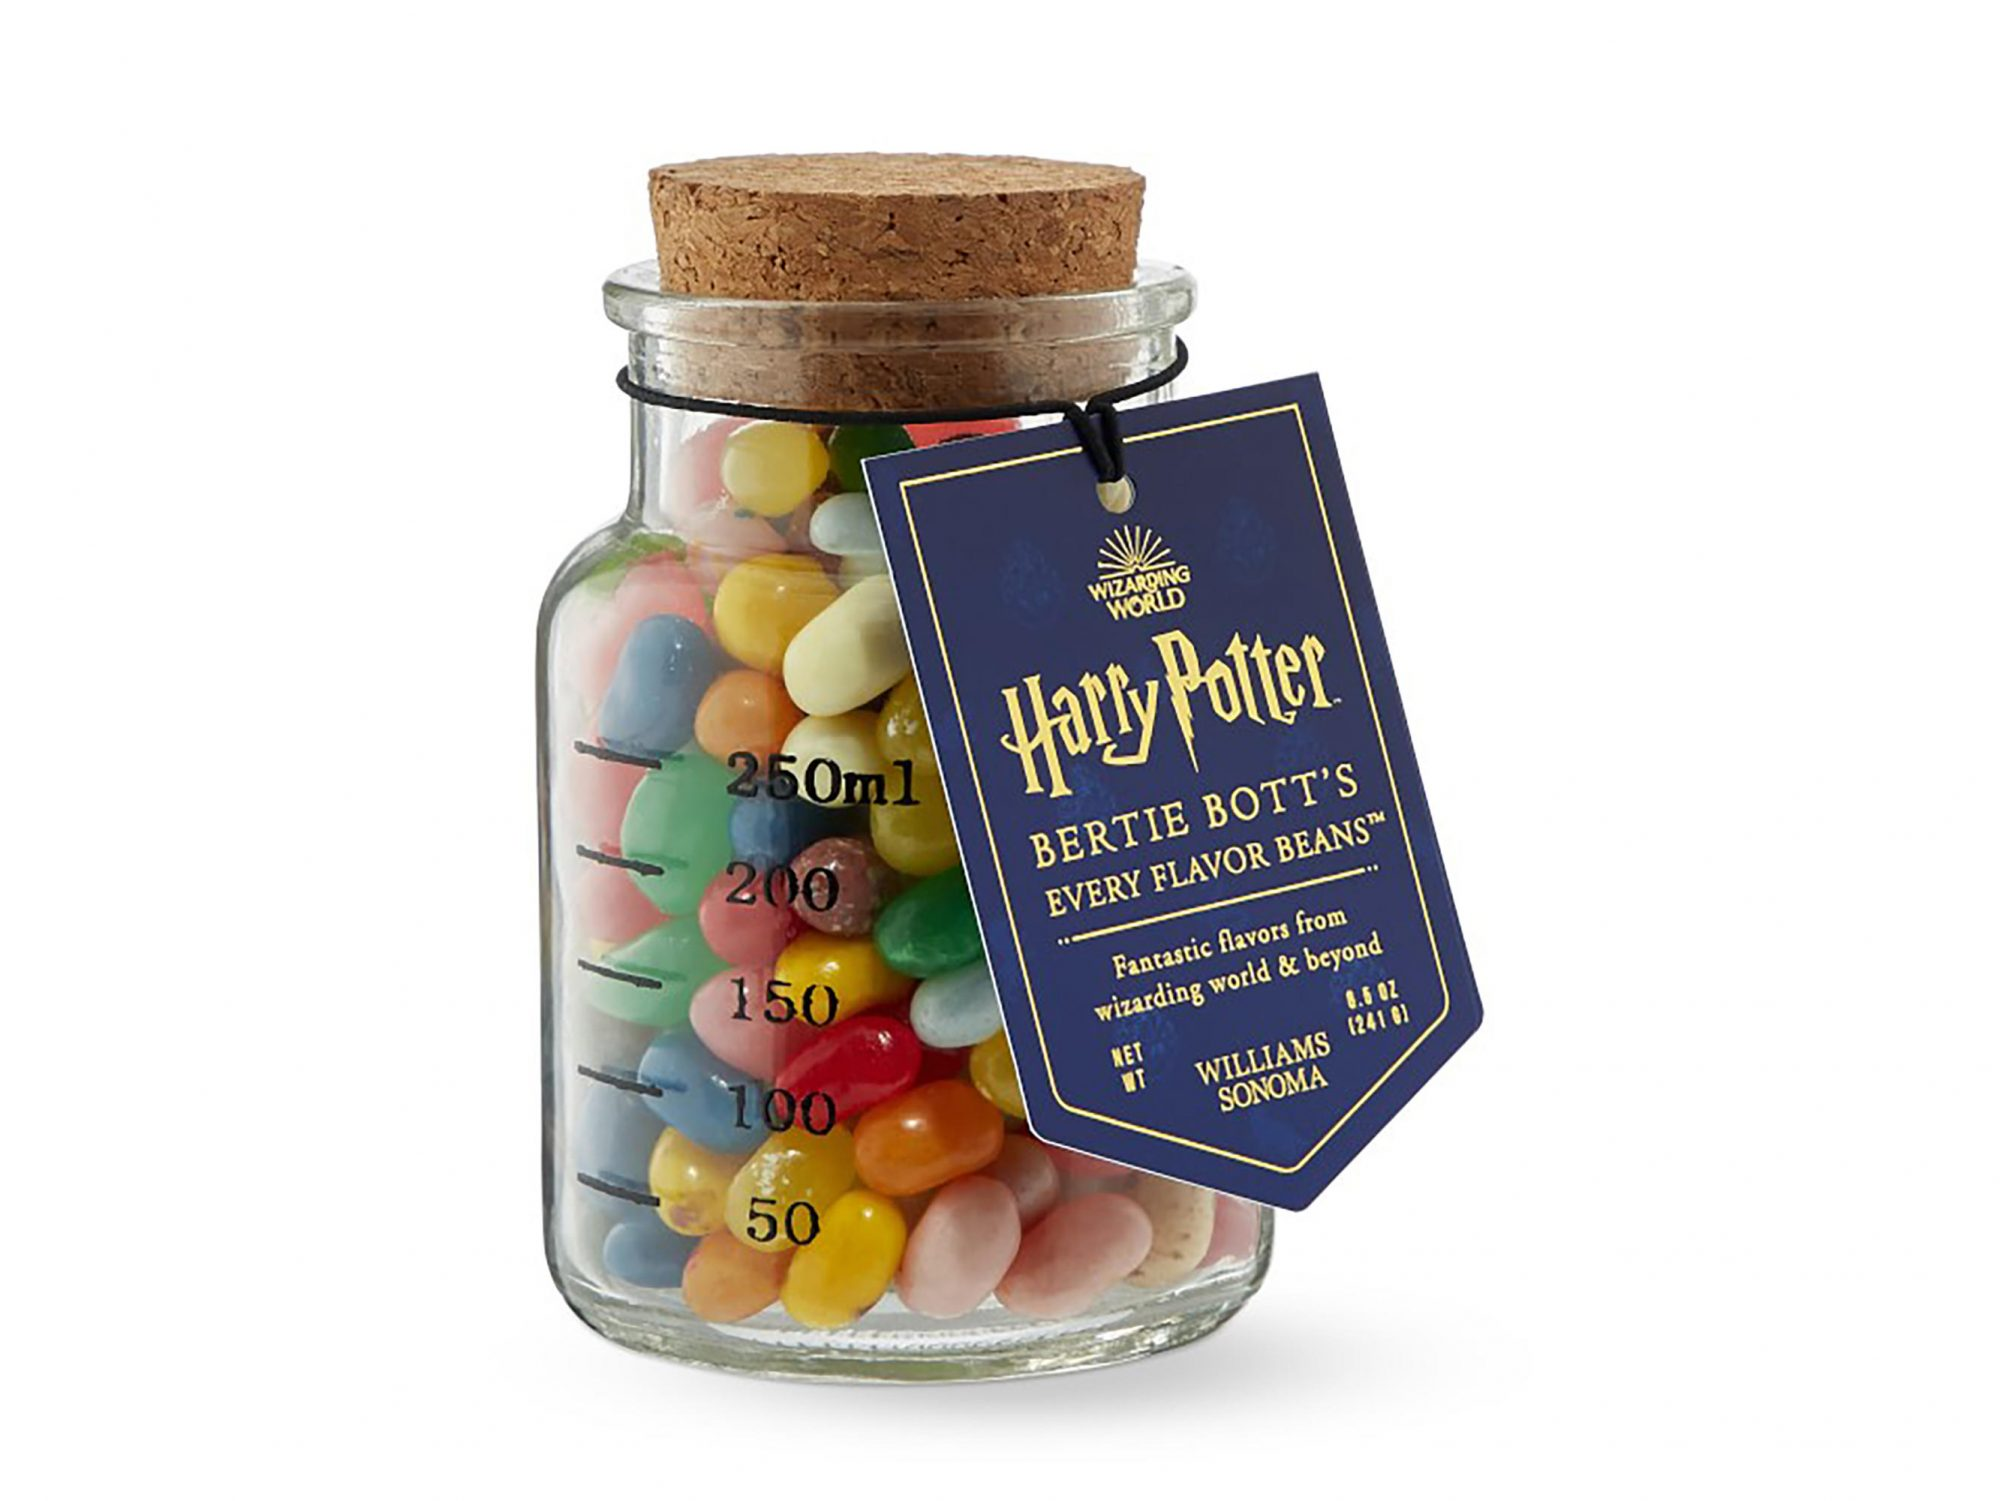 Williams Sonoma Adds New Harry Potter Items Just in Time for Holidays HP-every-flavor-beans